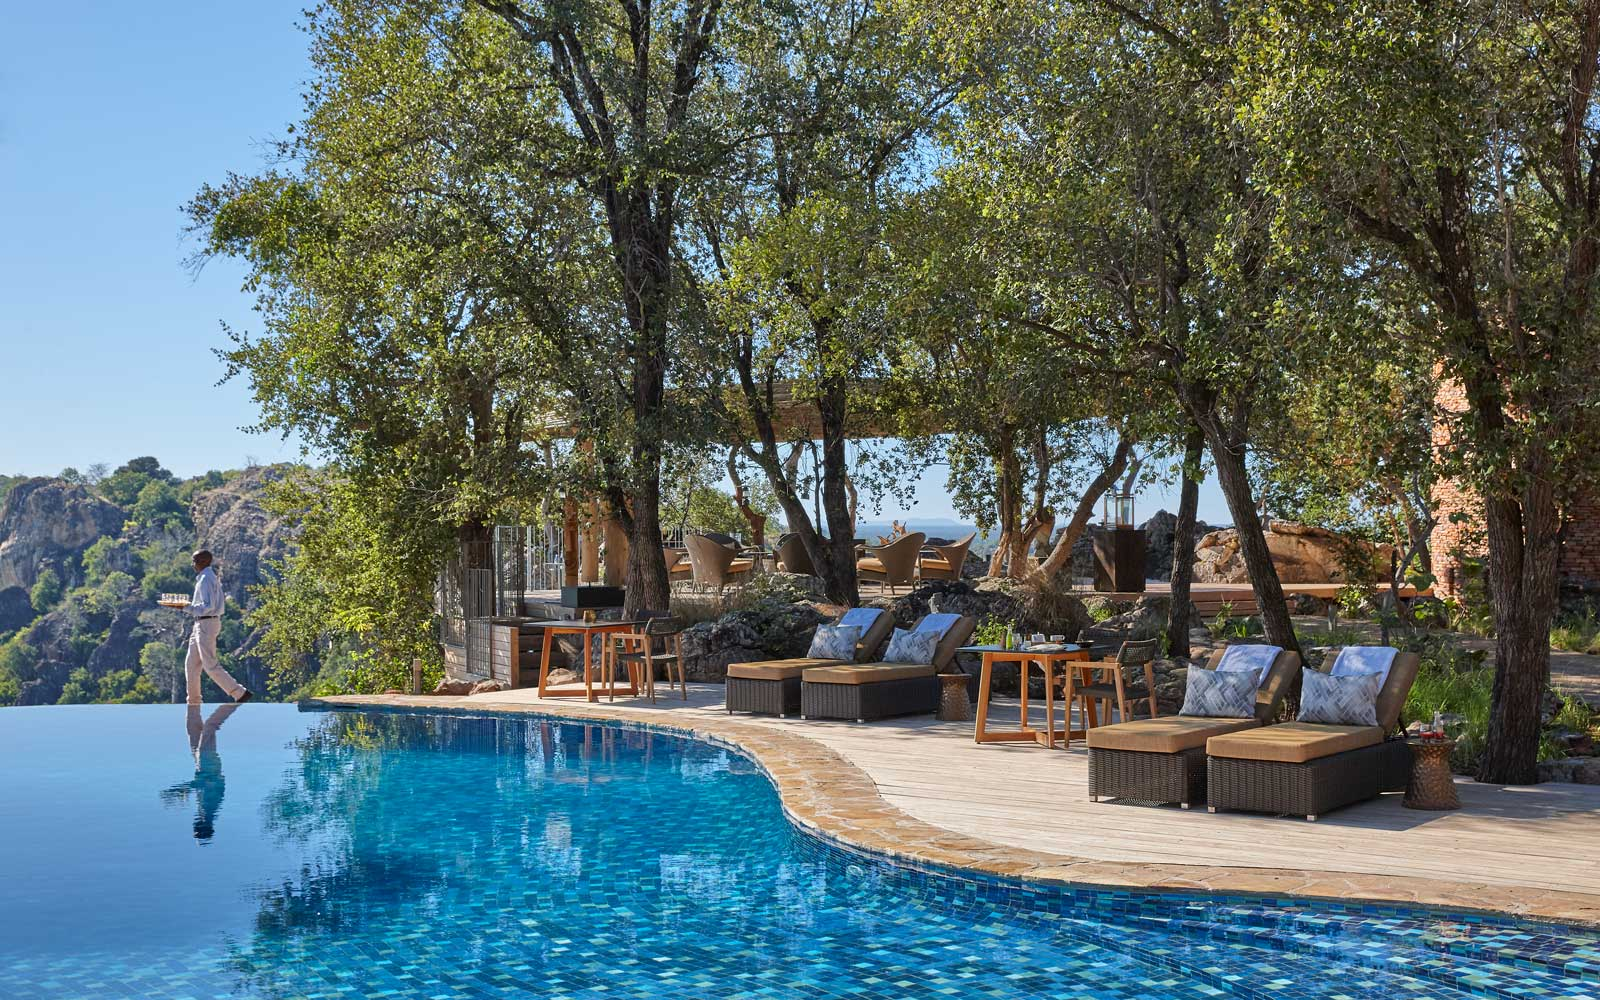 Pool deck at Singita Pamushana